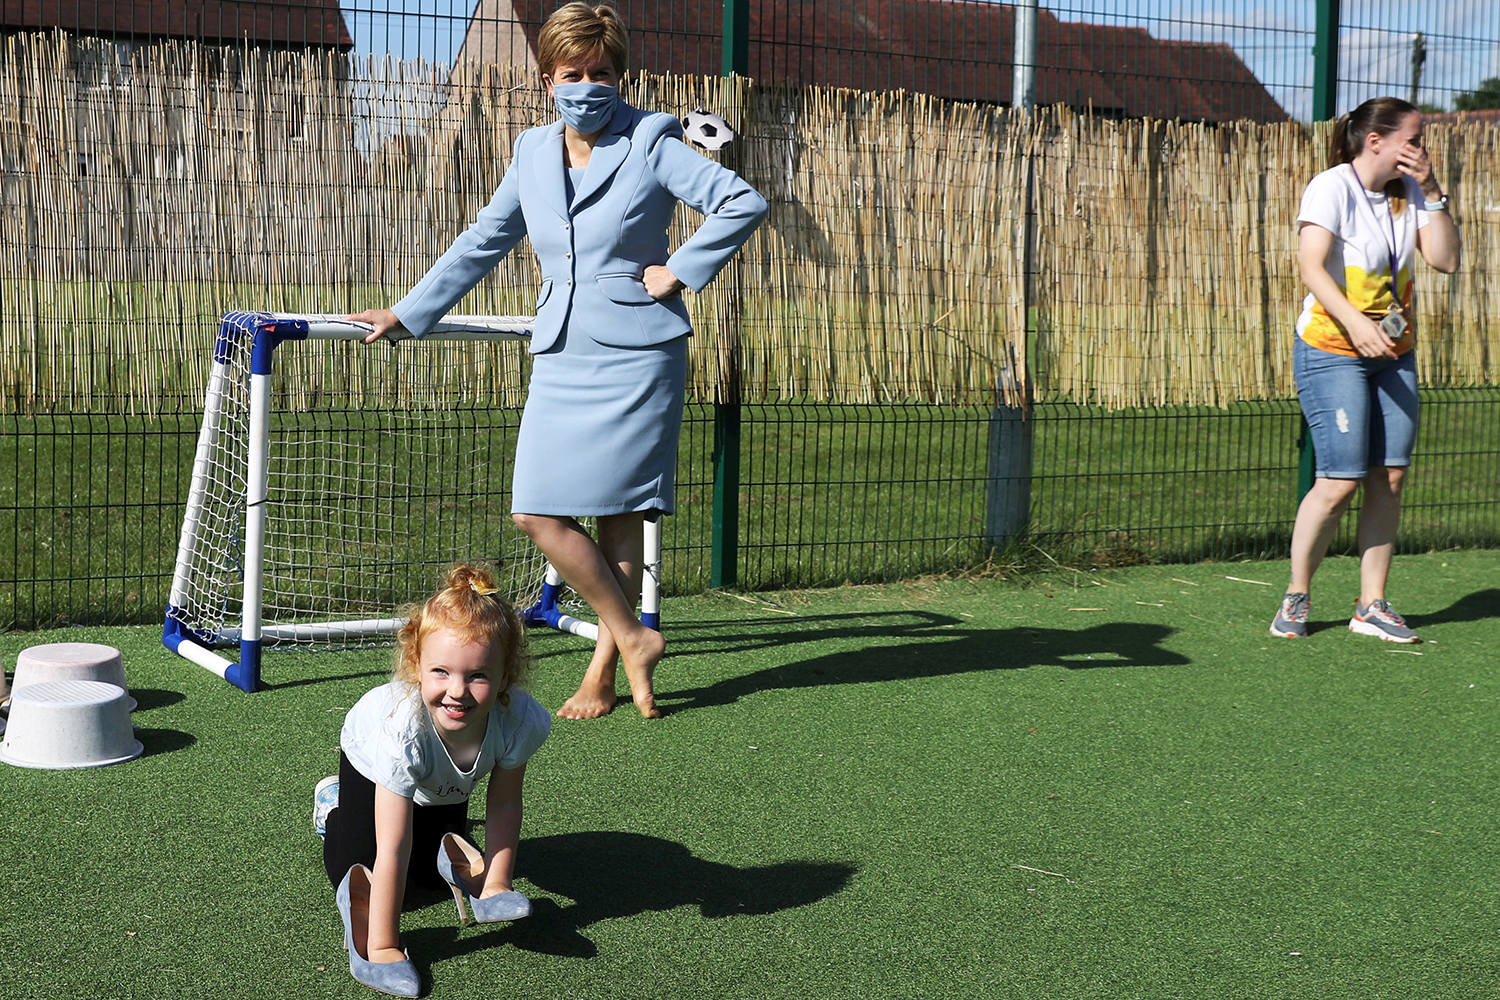 Nicola Sturgeon watches girl play with her shoes